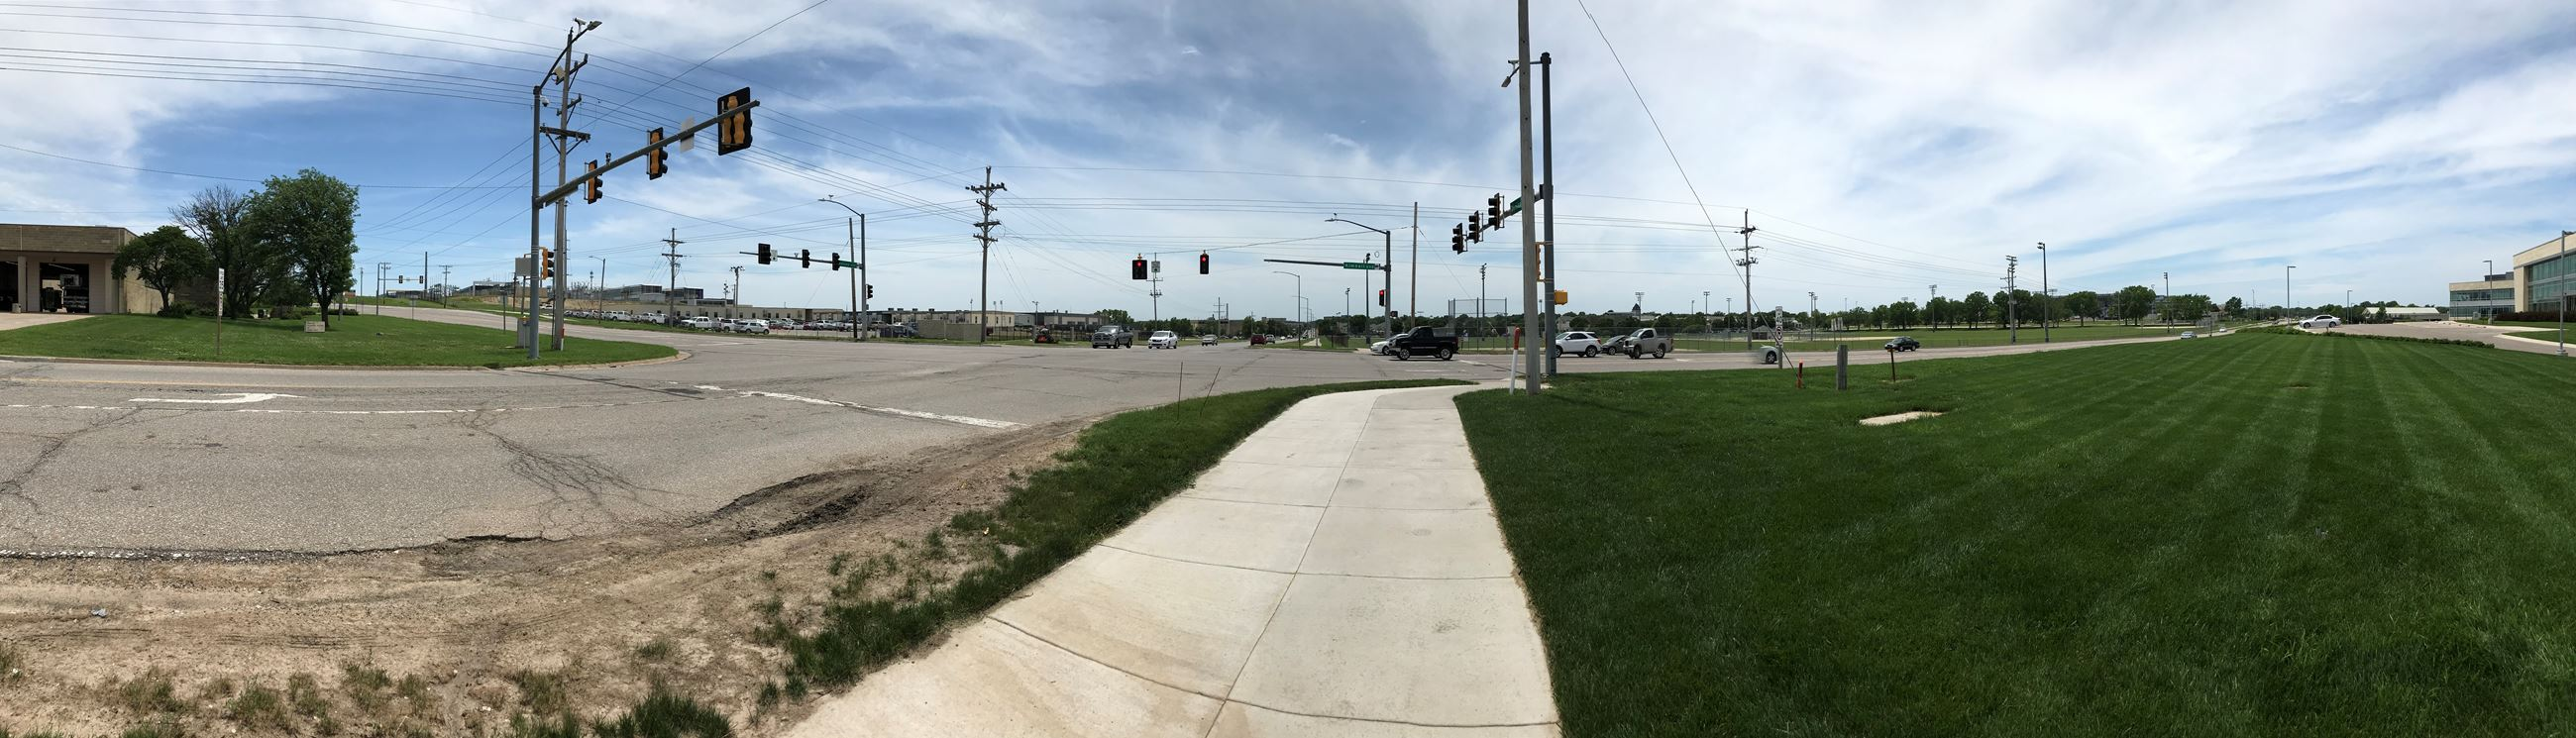 Panoramic of current Denison and Kimball intersection